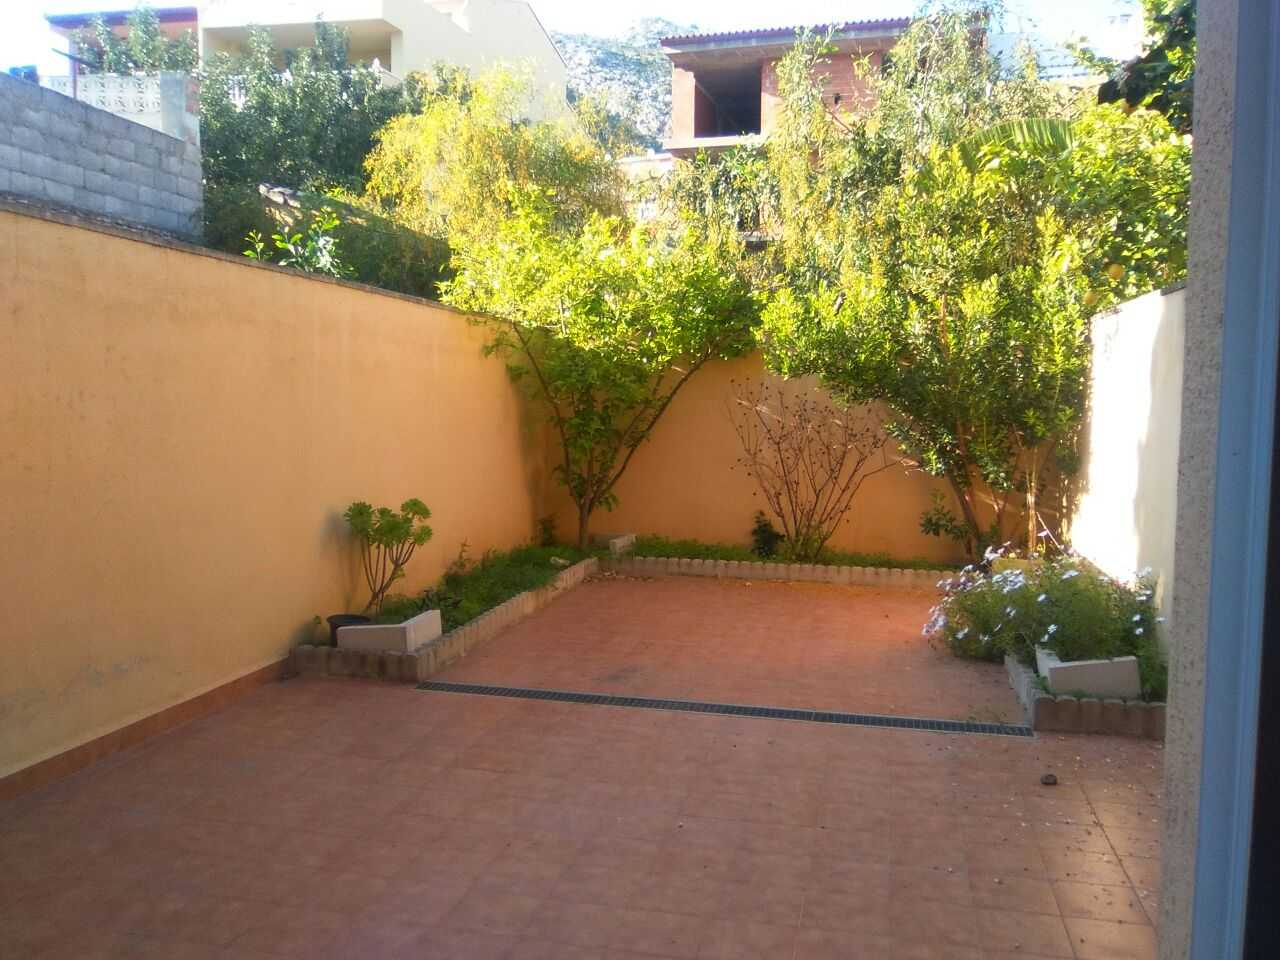 Photo  number 4: Townhouse in Sale in Sanet y Negrals, Area Centro. Ref. 5-18-14319 (79525-0001)